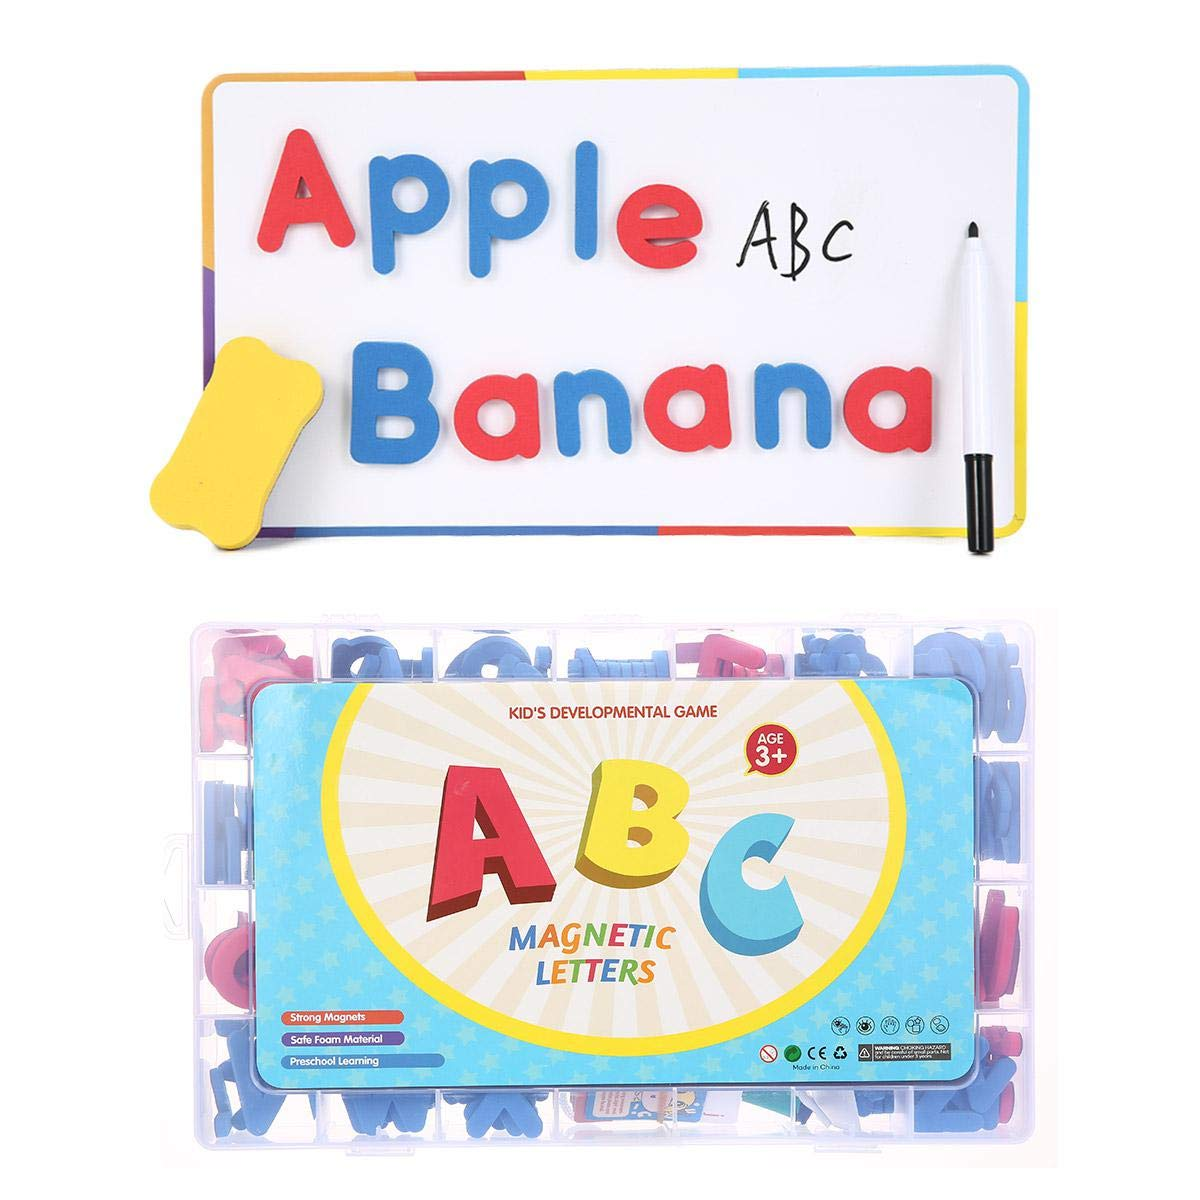 HAMKAW Lettres et Num/éros Magn/étiques avec Tableau Magn/étique Majuscule//Minuscule//Mousse Alphabet//ABC Aimants Jouets pour lApprentissage Pr/éscolaire Alphabet Magnets